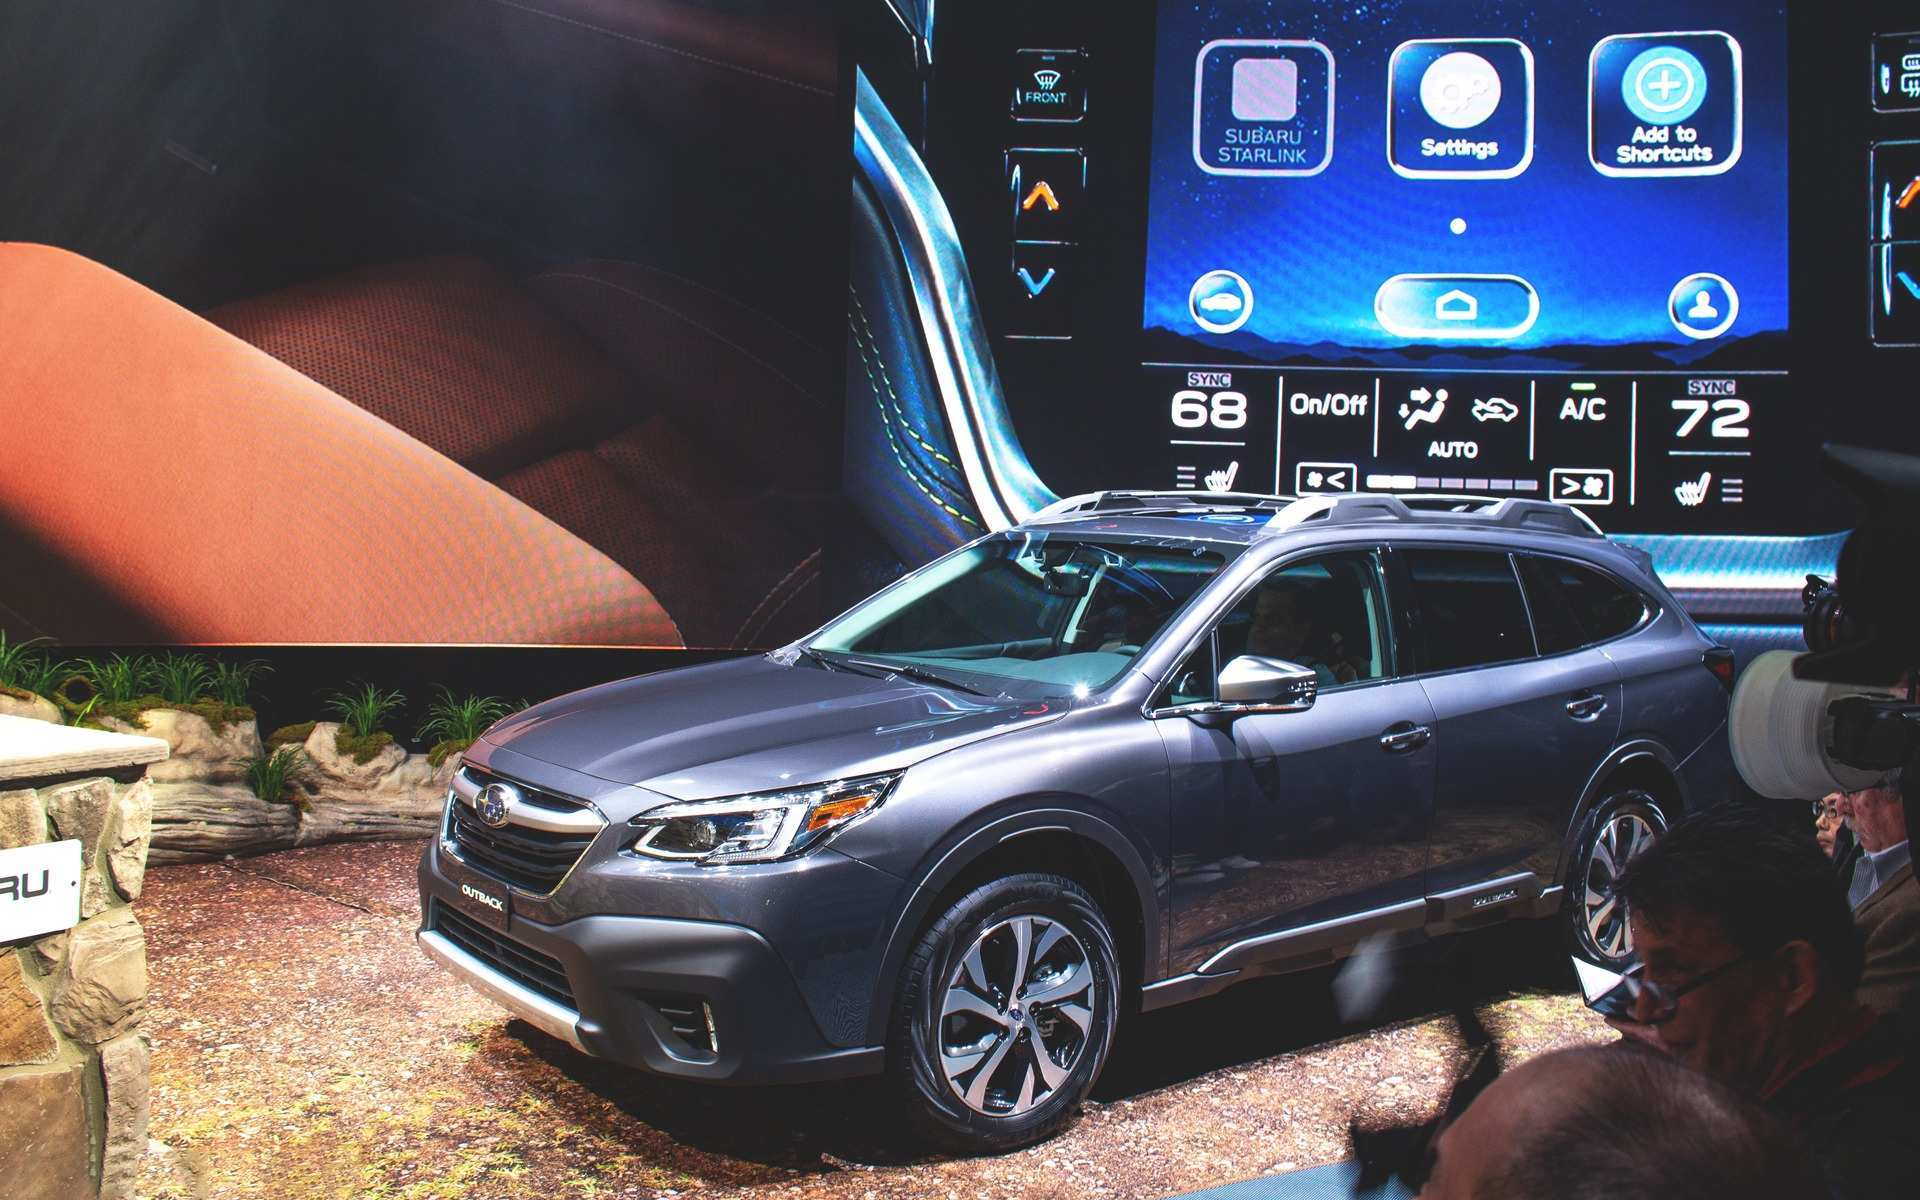 50 Concept of Subaru Outback New Model 2020 Specs by Subaru Outback New Model 2020